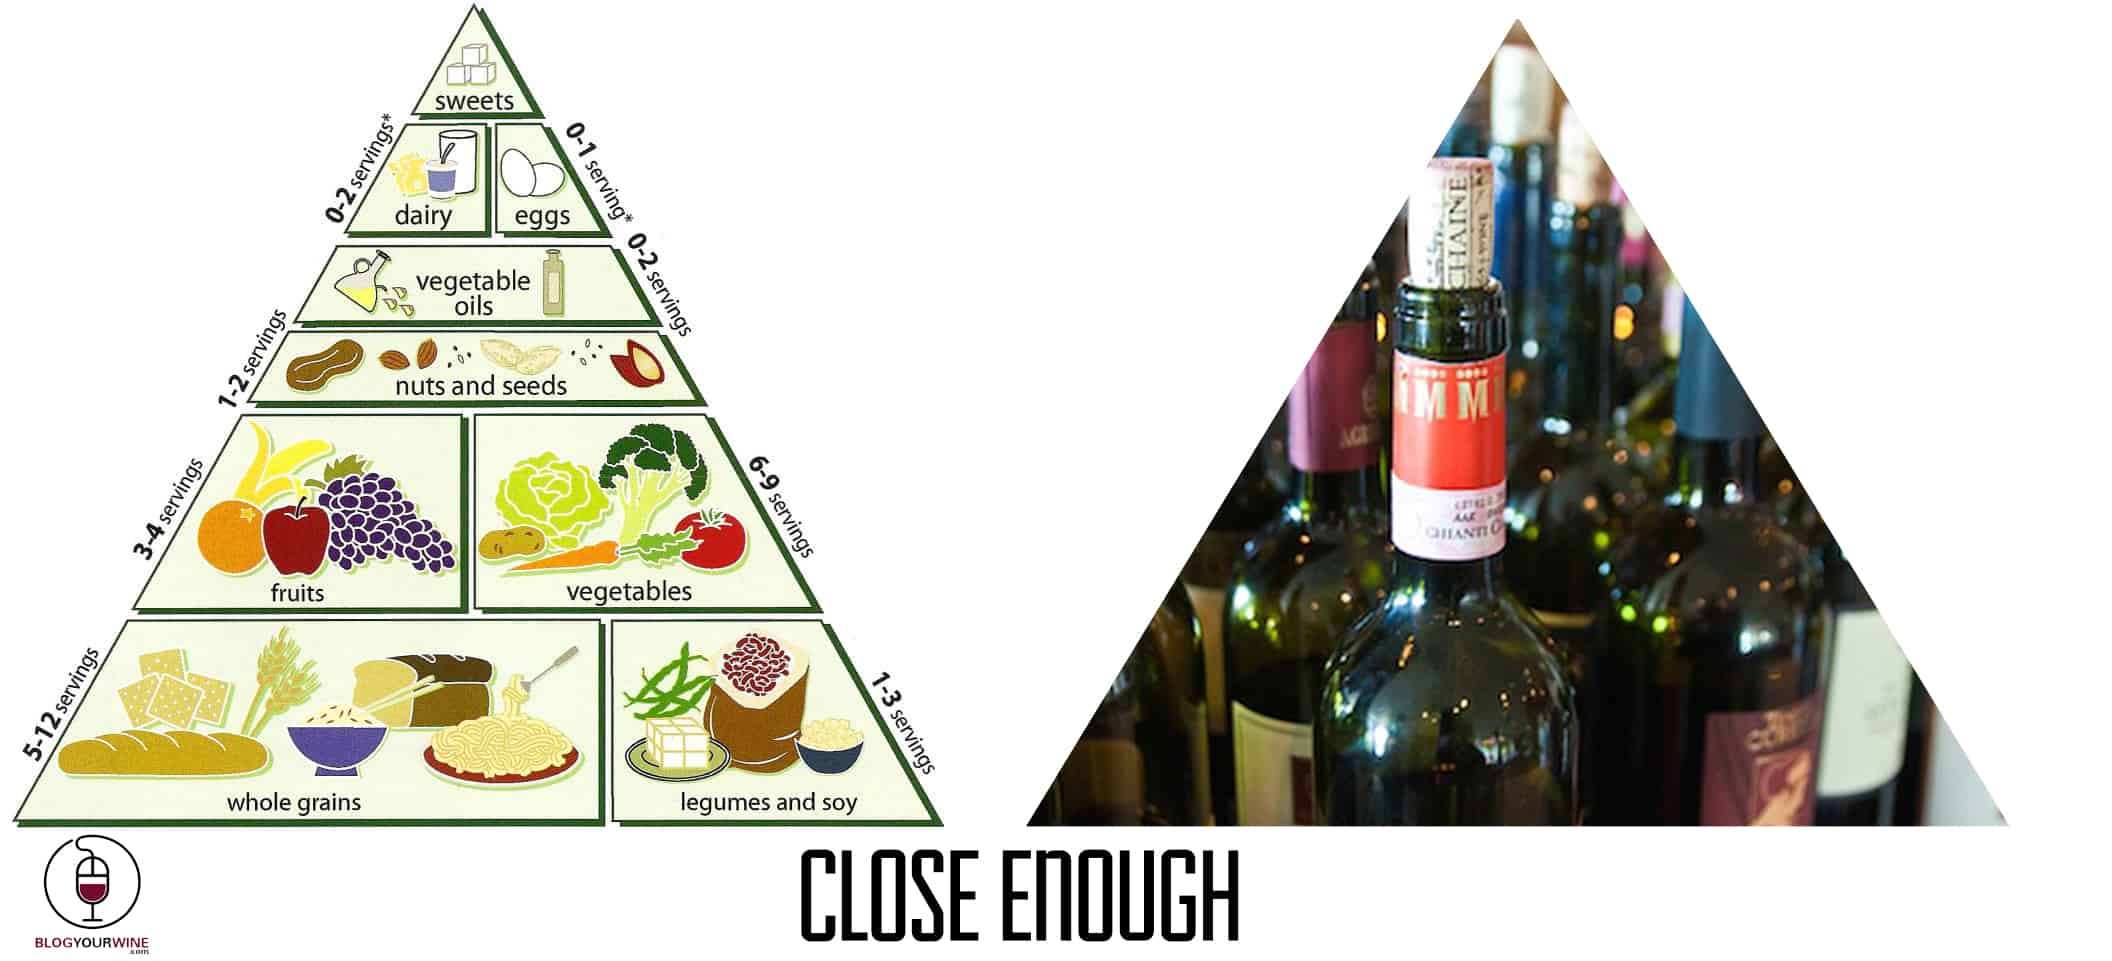 Wine-Food-Pyramid